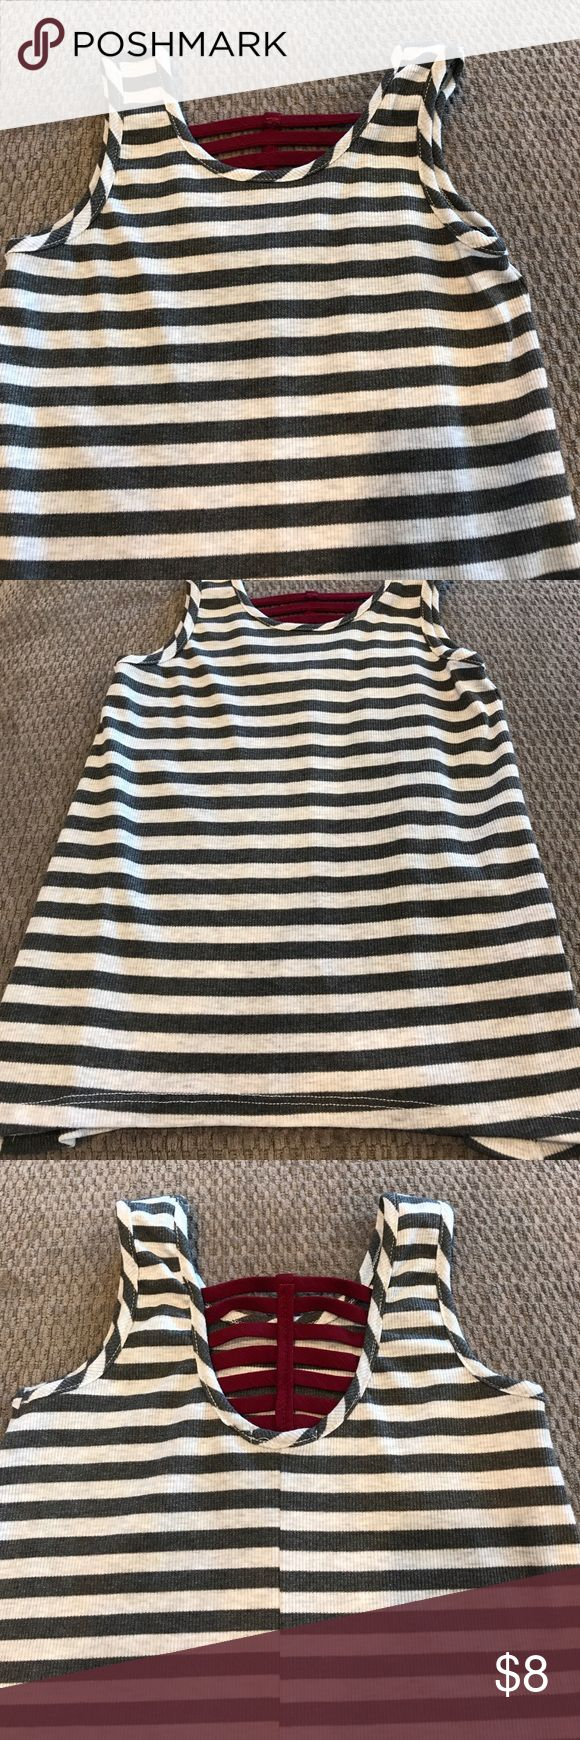 Girls gray striped tank top with Maroon back Girls gray striped tank top with Maroon back; size XS Full Tilt Shirts & Tops Tank Tops